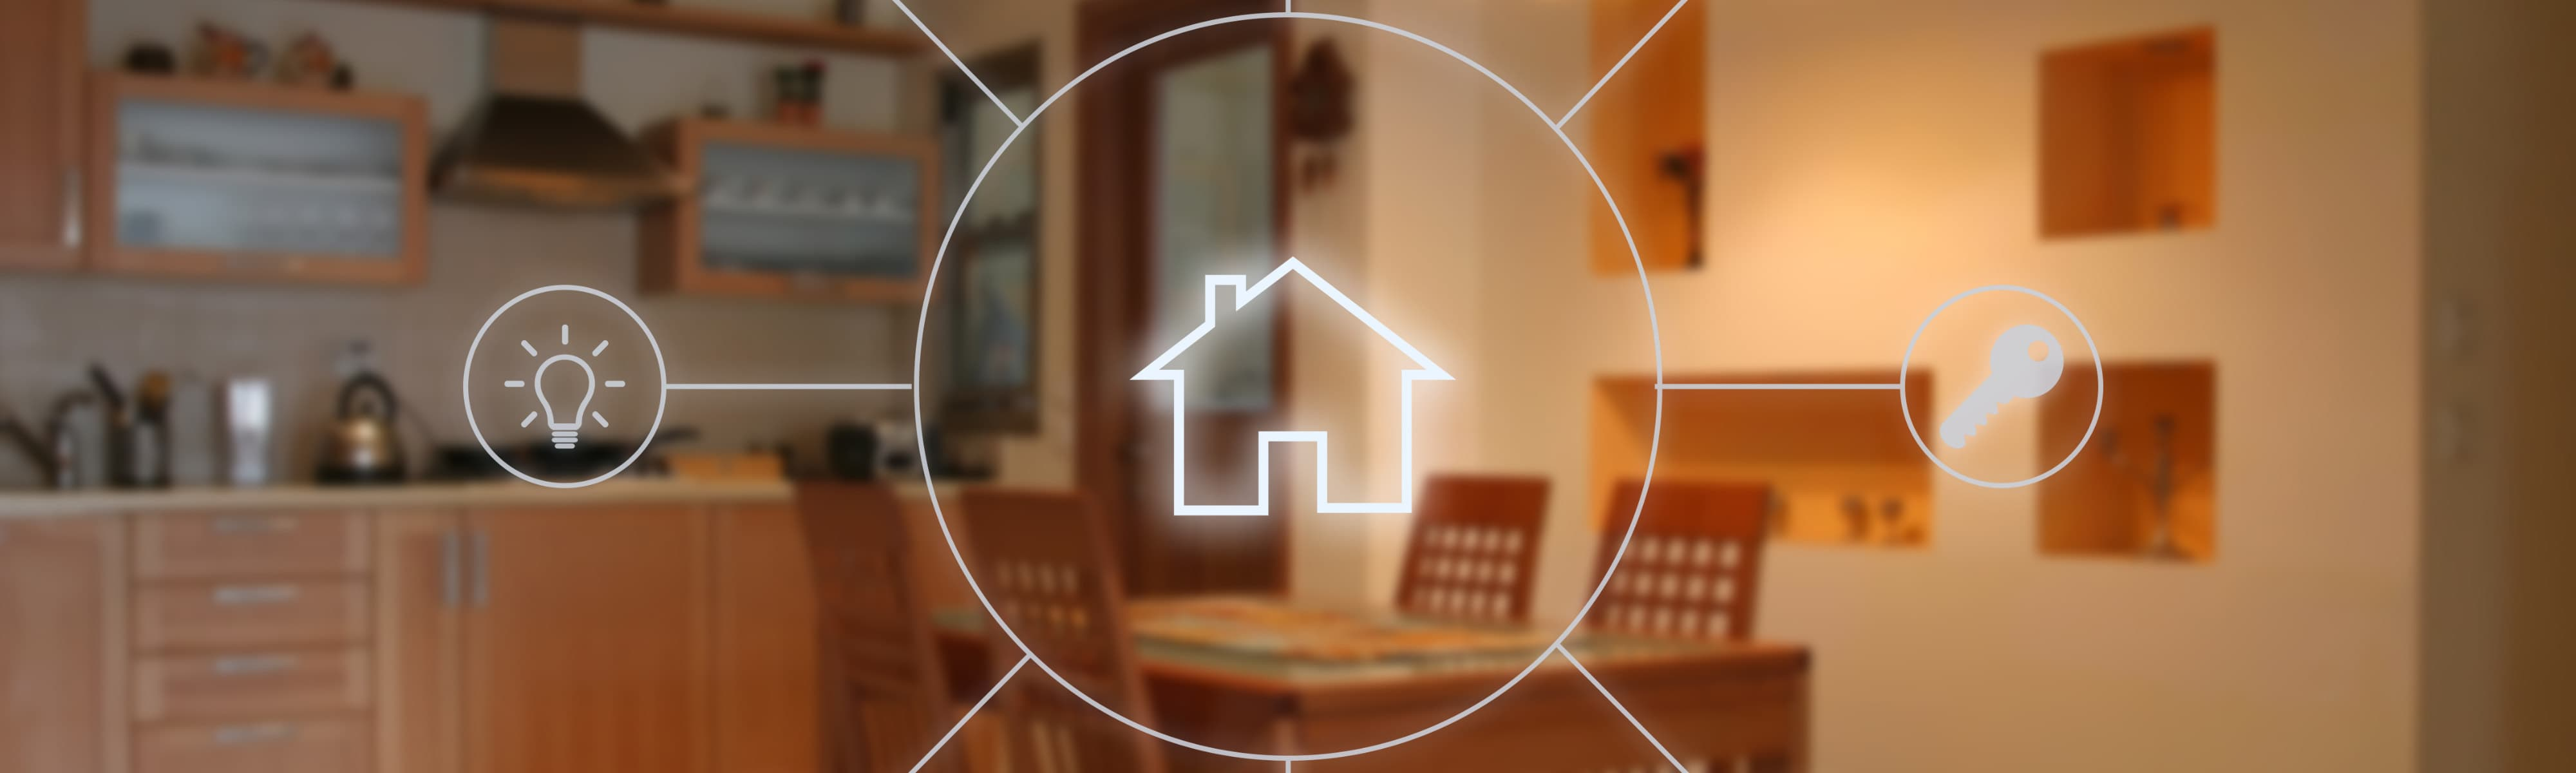 home-automation-04